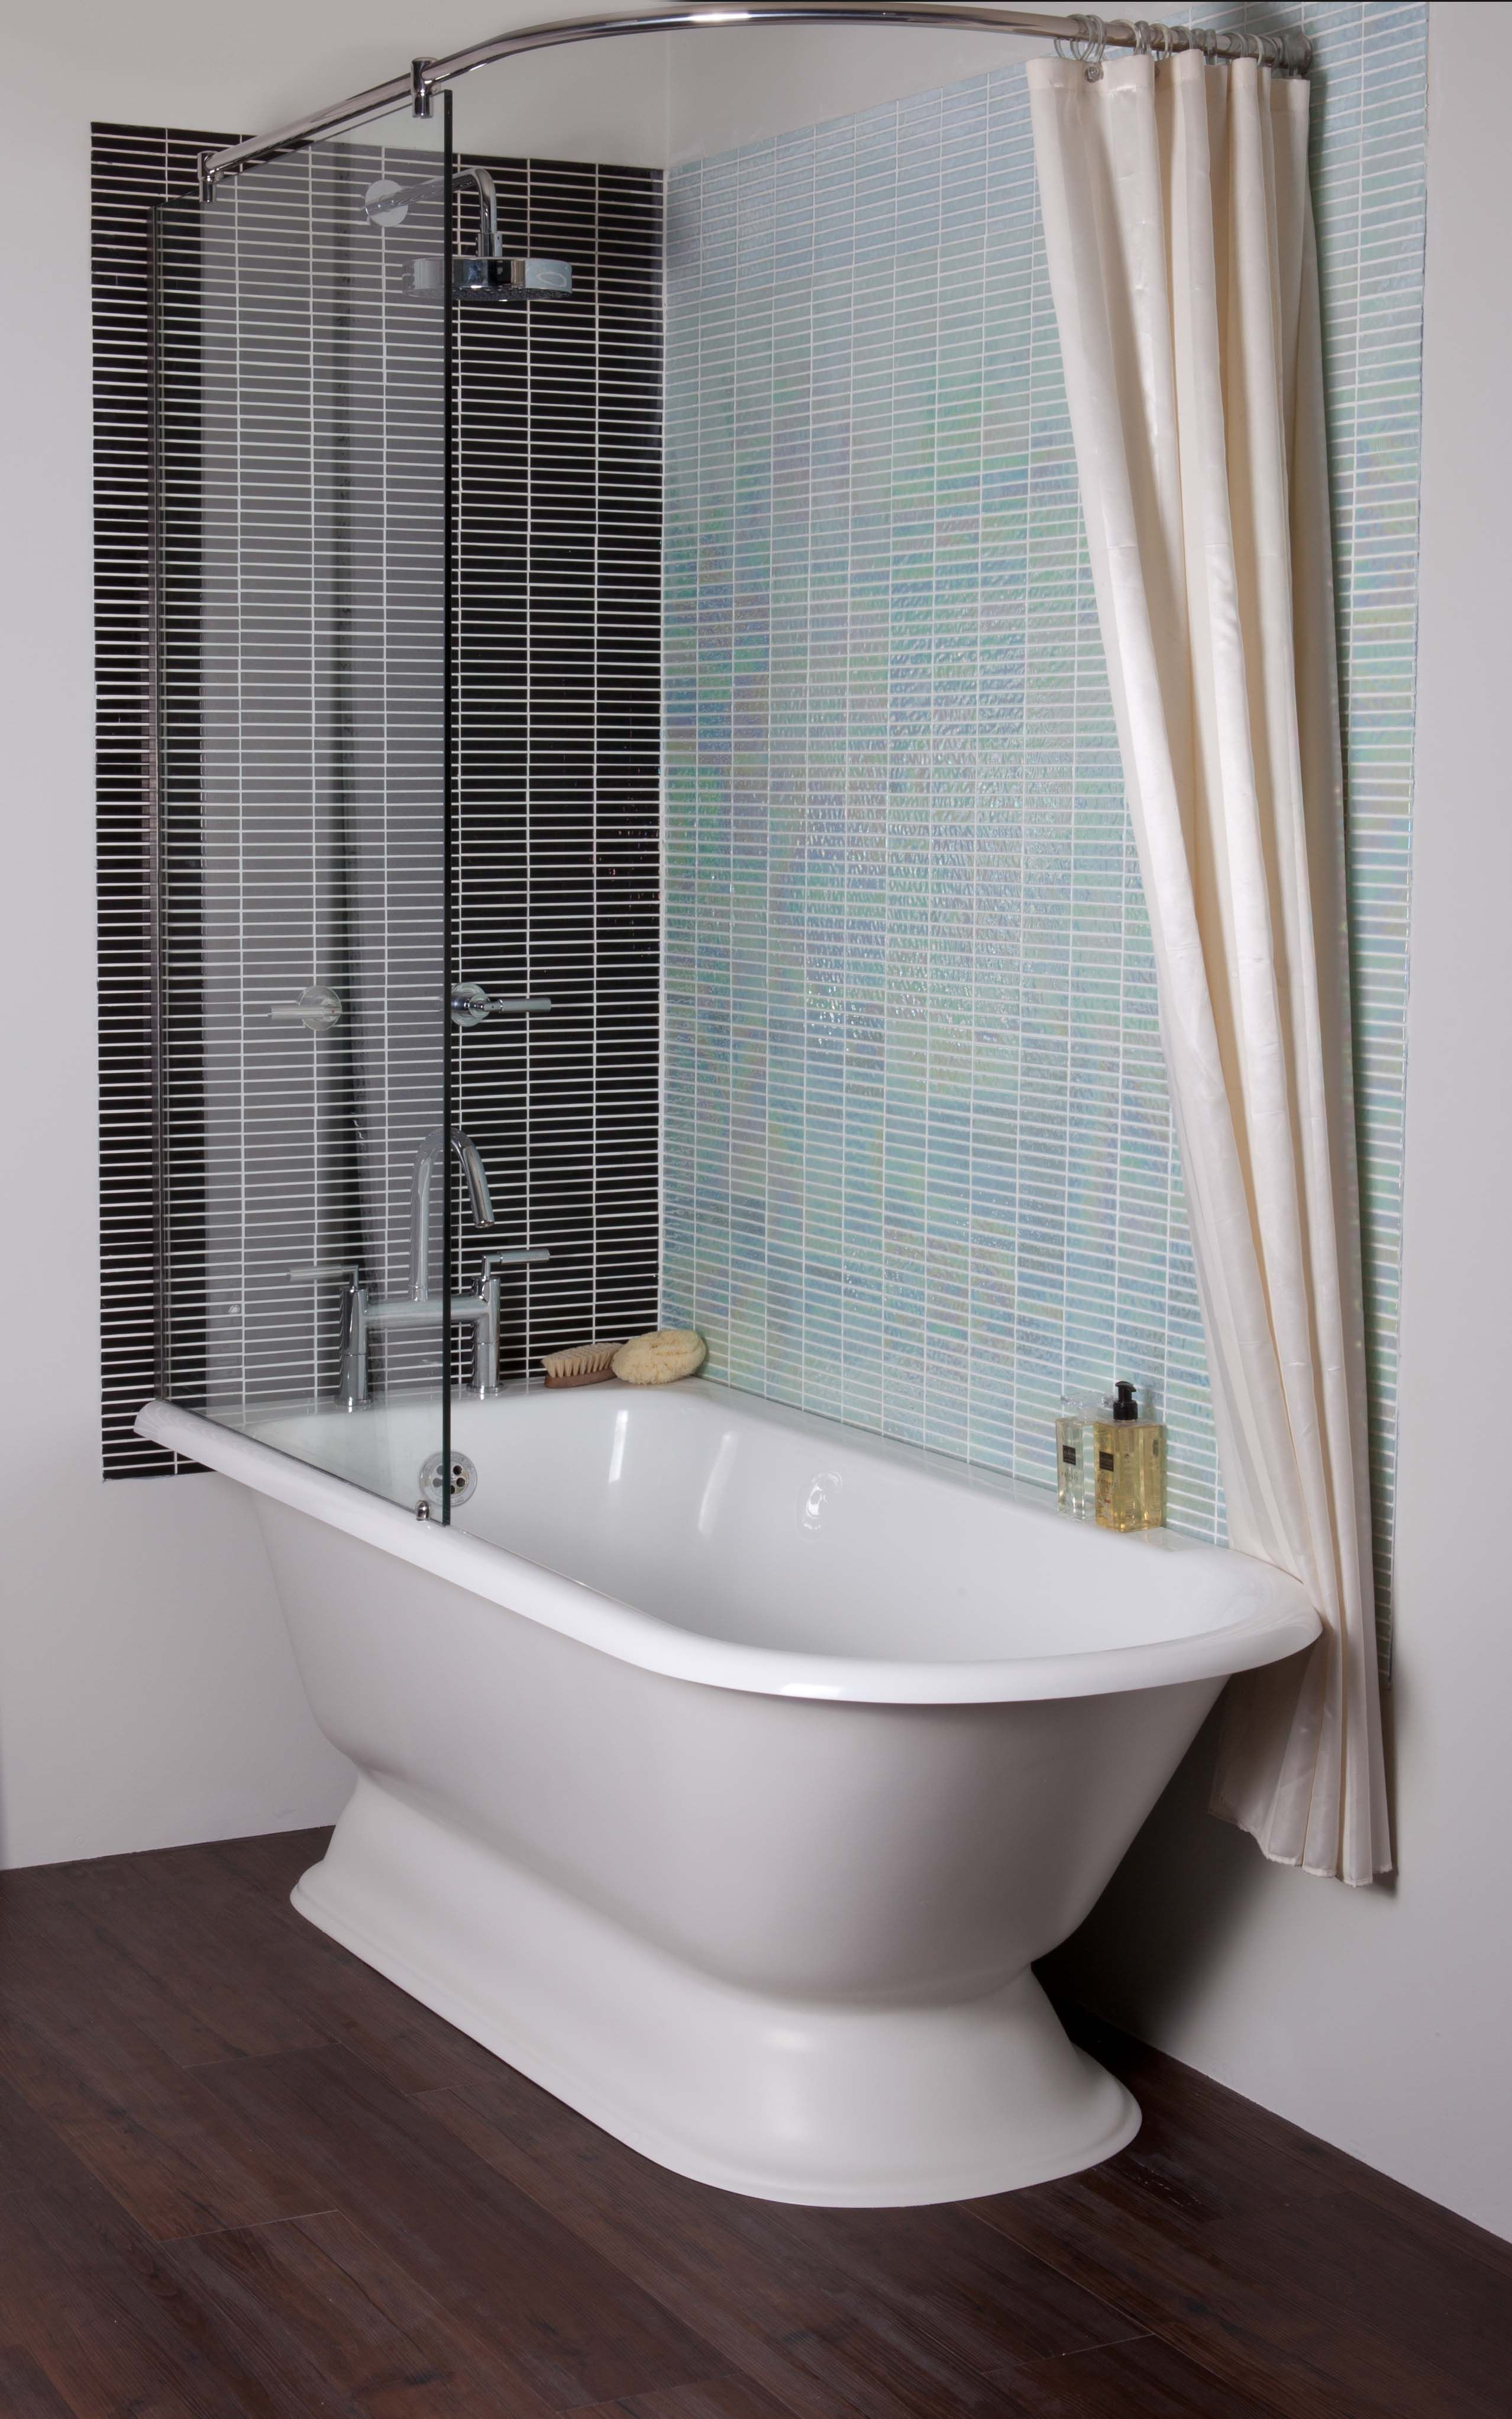 Bathroom Draque Acrylic Beautiful Free Standing Tub Shower Curtain Master Bathroom Features An Clawfoot Tub Shower Free Standing Bath Tub Bathtub Shower Combo